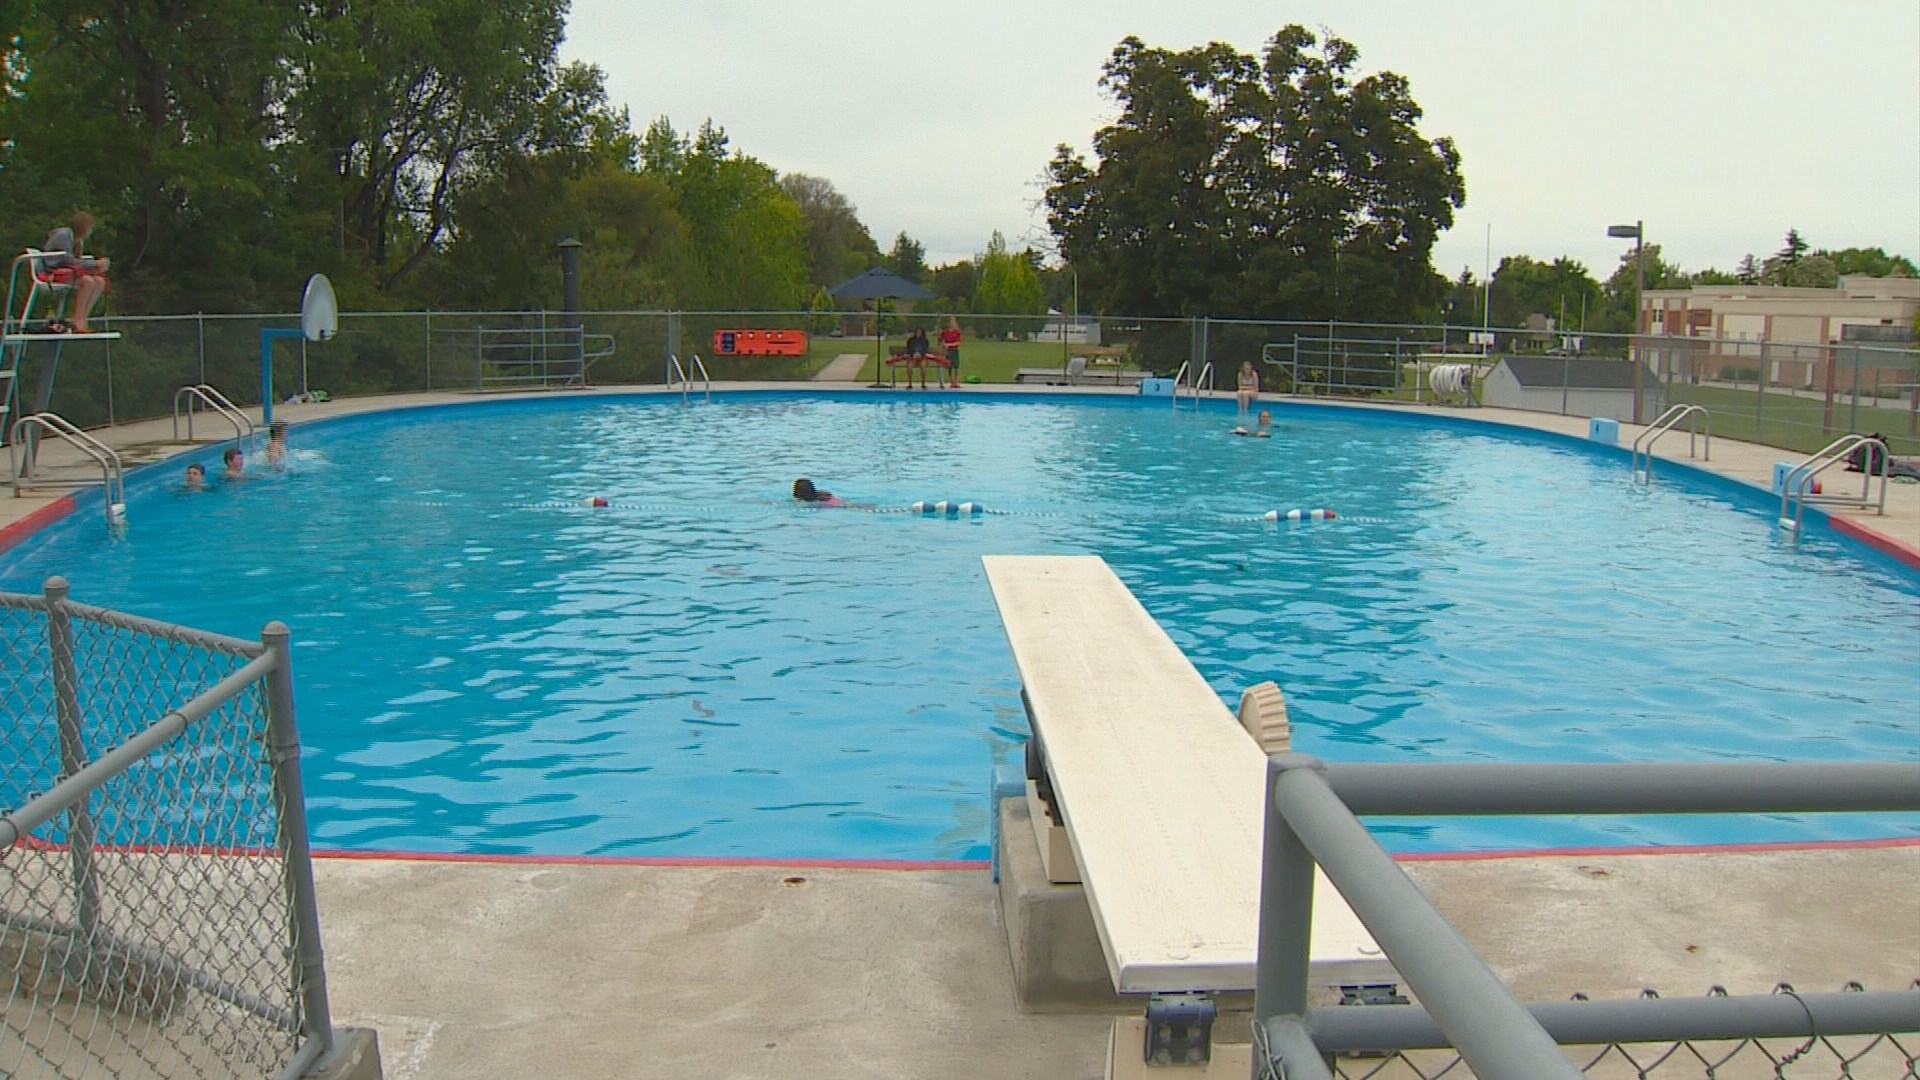 Boise public pools open for summer ktvb com for Public swimming pools locations maine